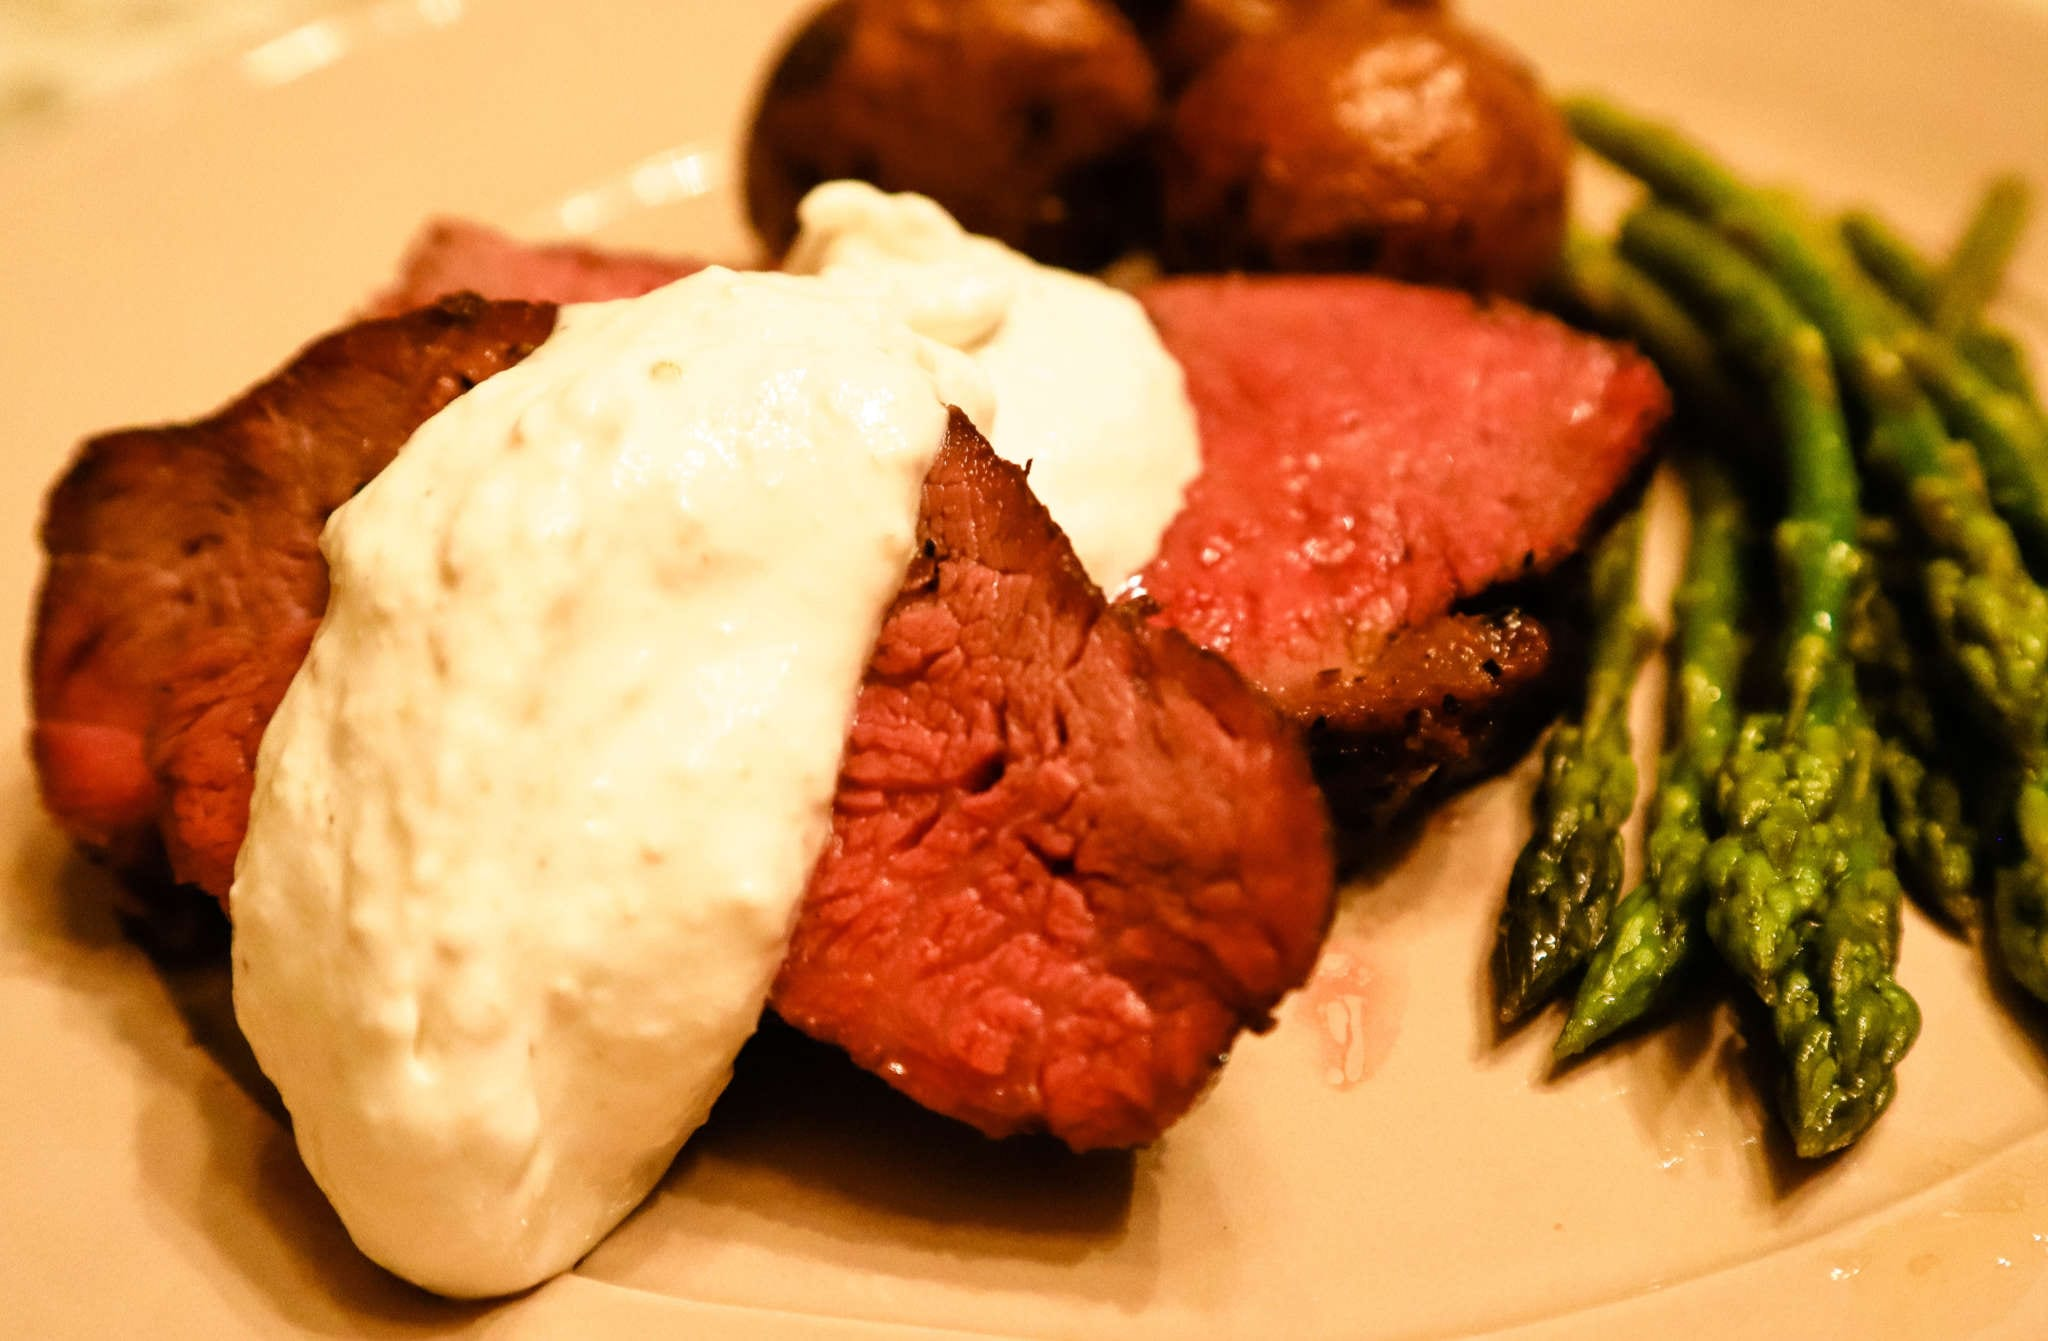 A plate of food, with Beef